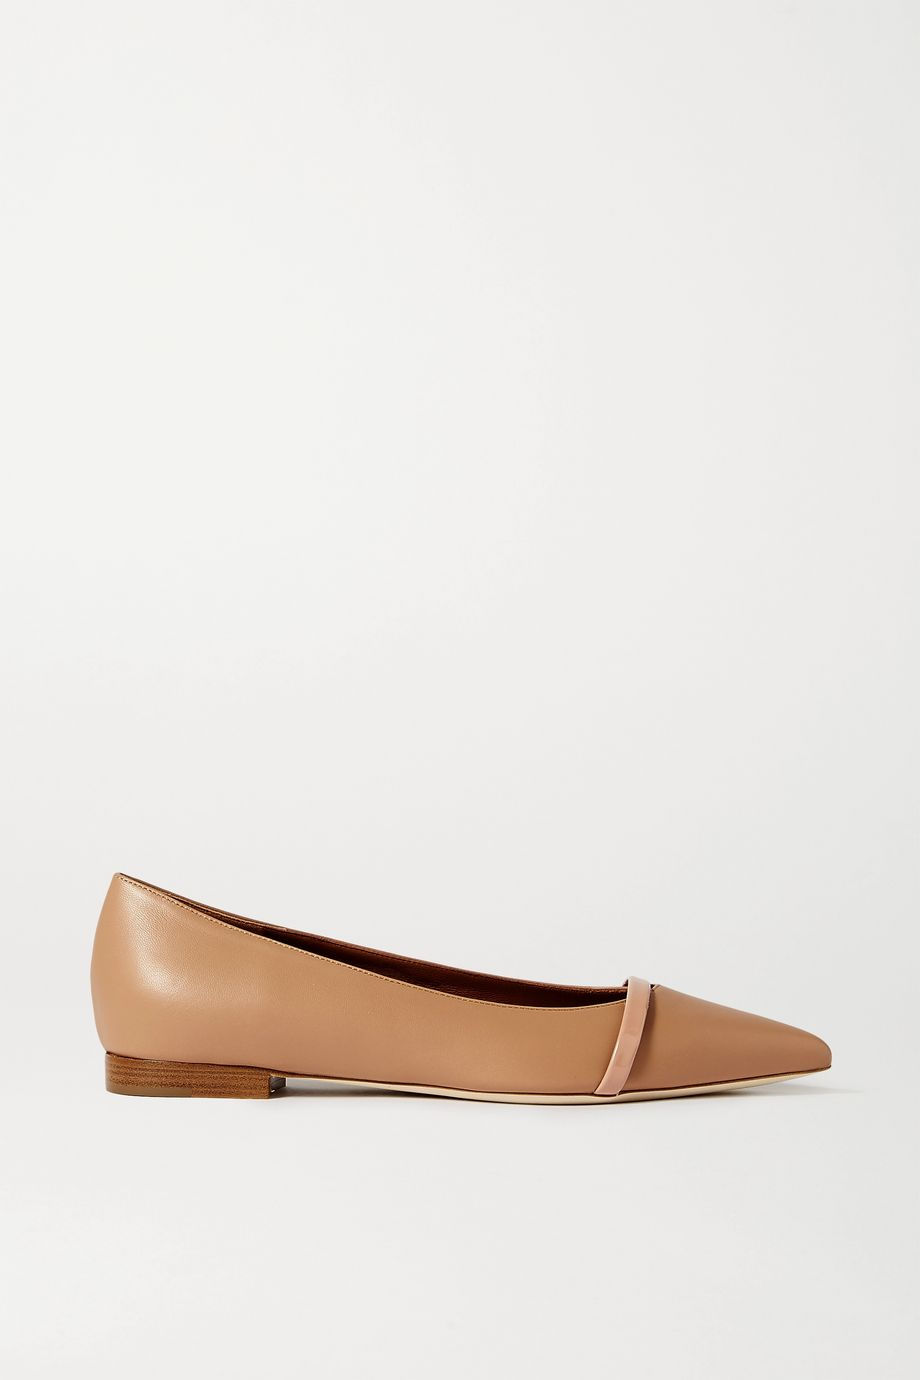 Malone Souliers Maybelle patent-trimmed leather point-toe flats